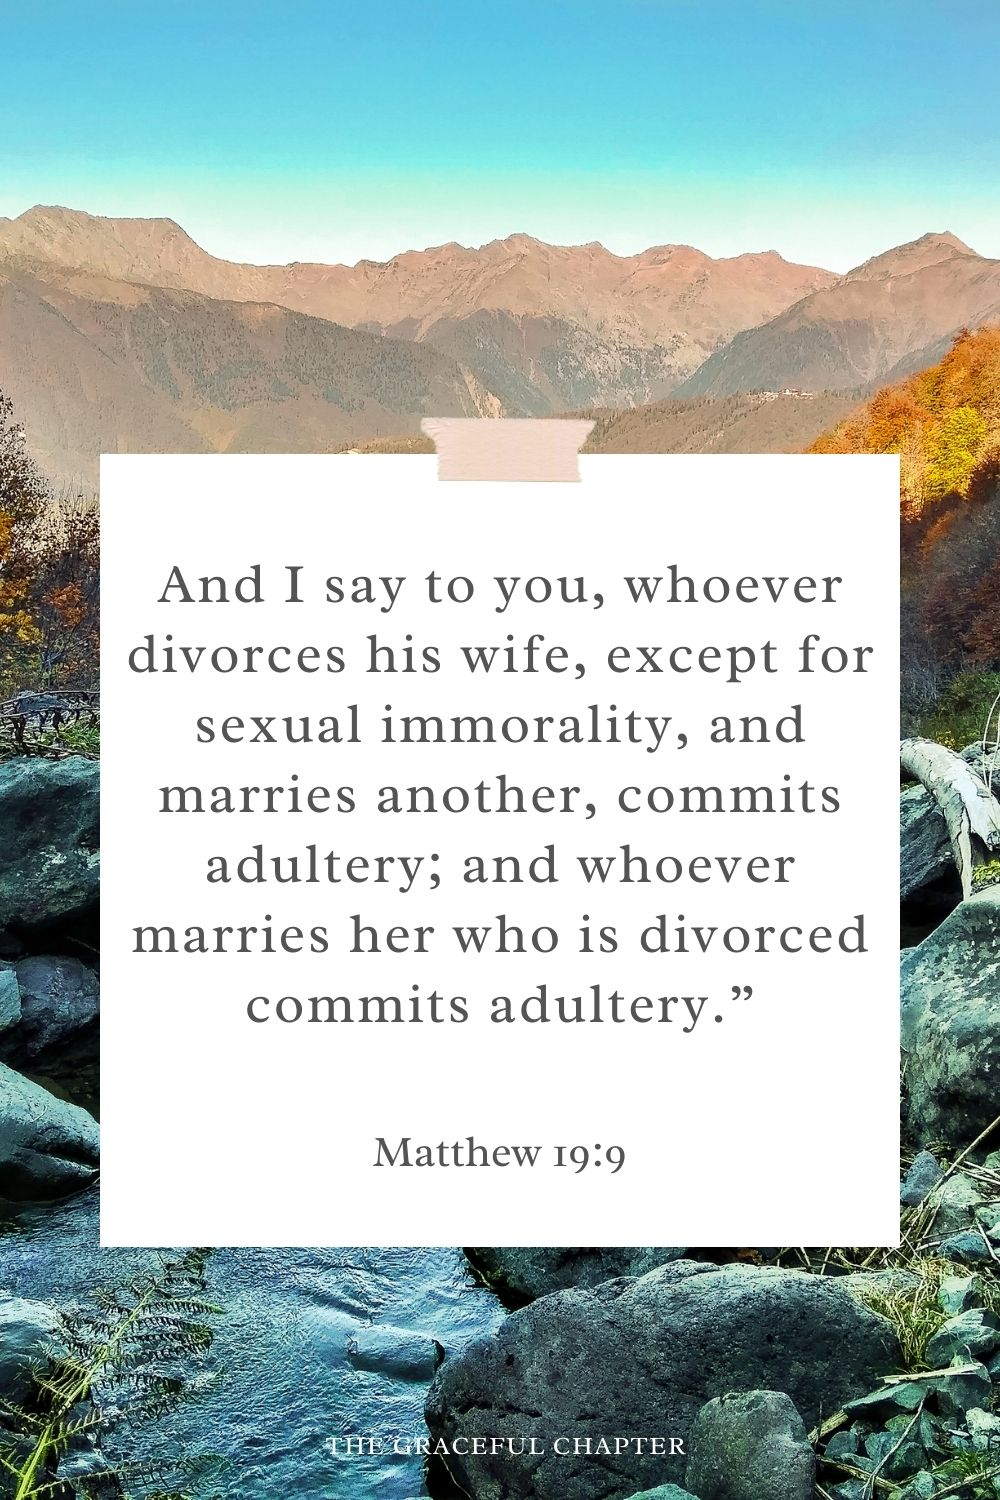 """And I say to you, whoever divorces his wife, except for sexual immorality, and marries another, commits adultery; and whoever marries her who is divorced commits adultery."""" Matthew 19:9"""